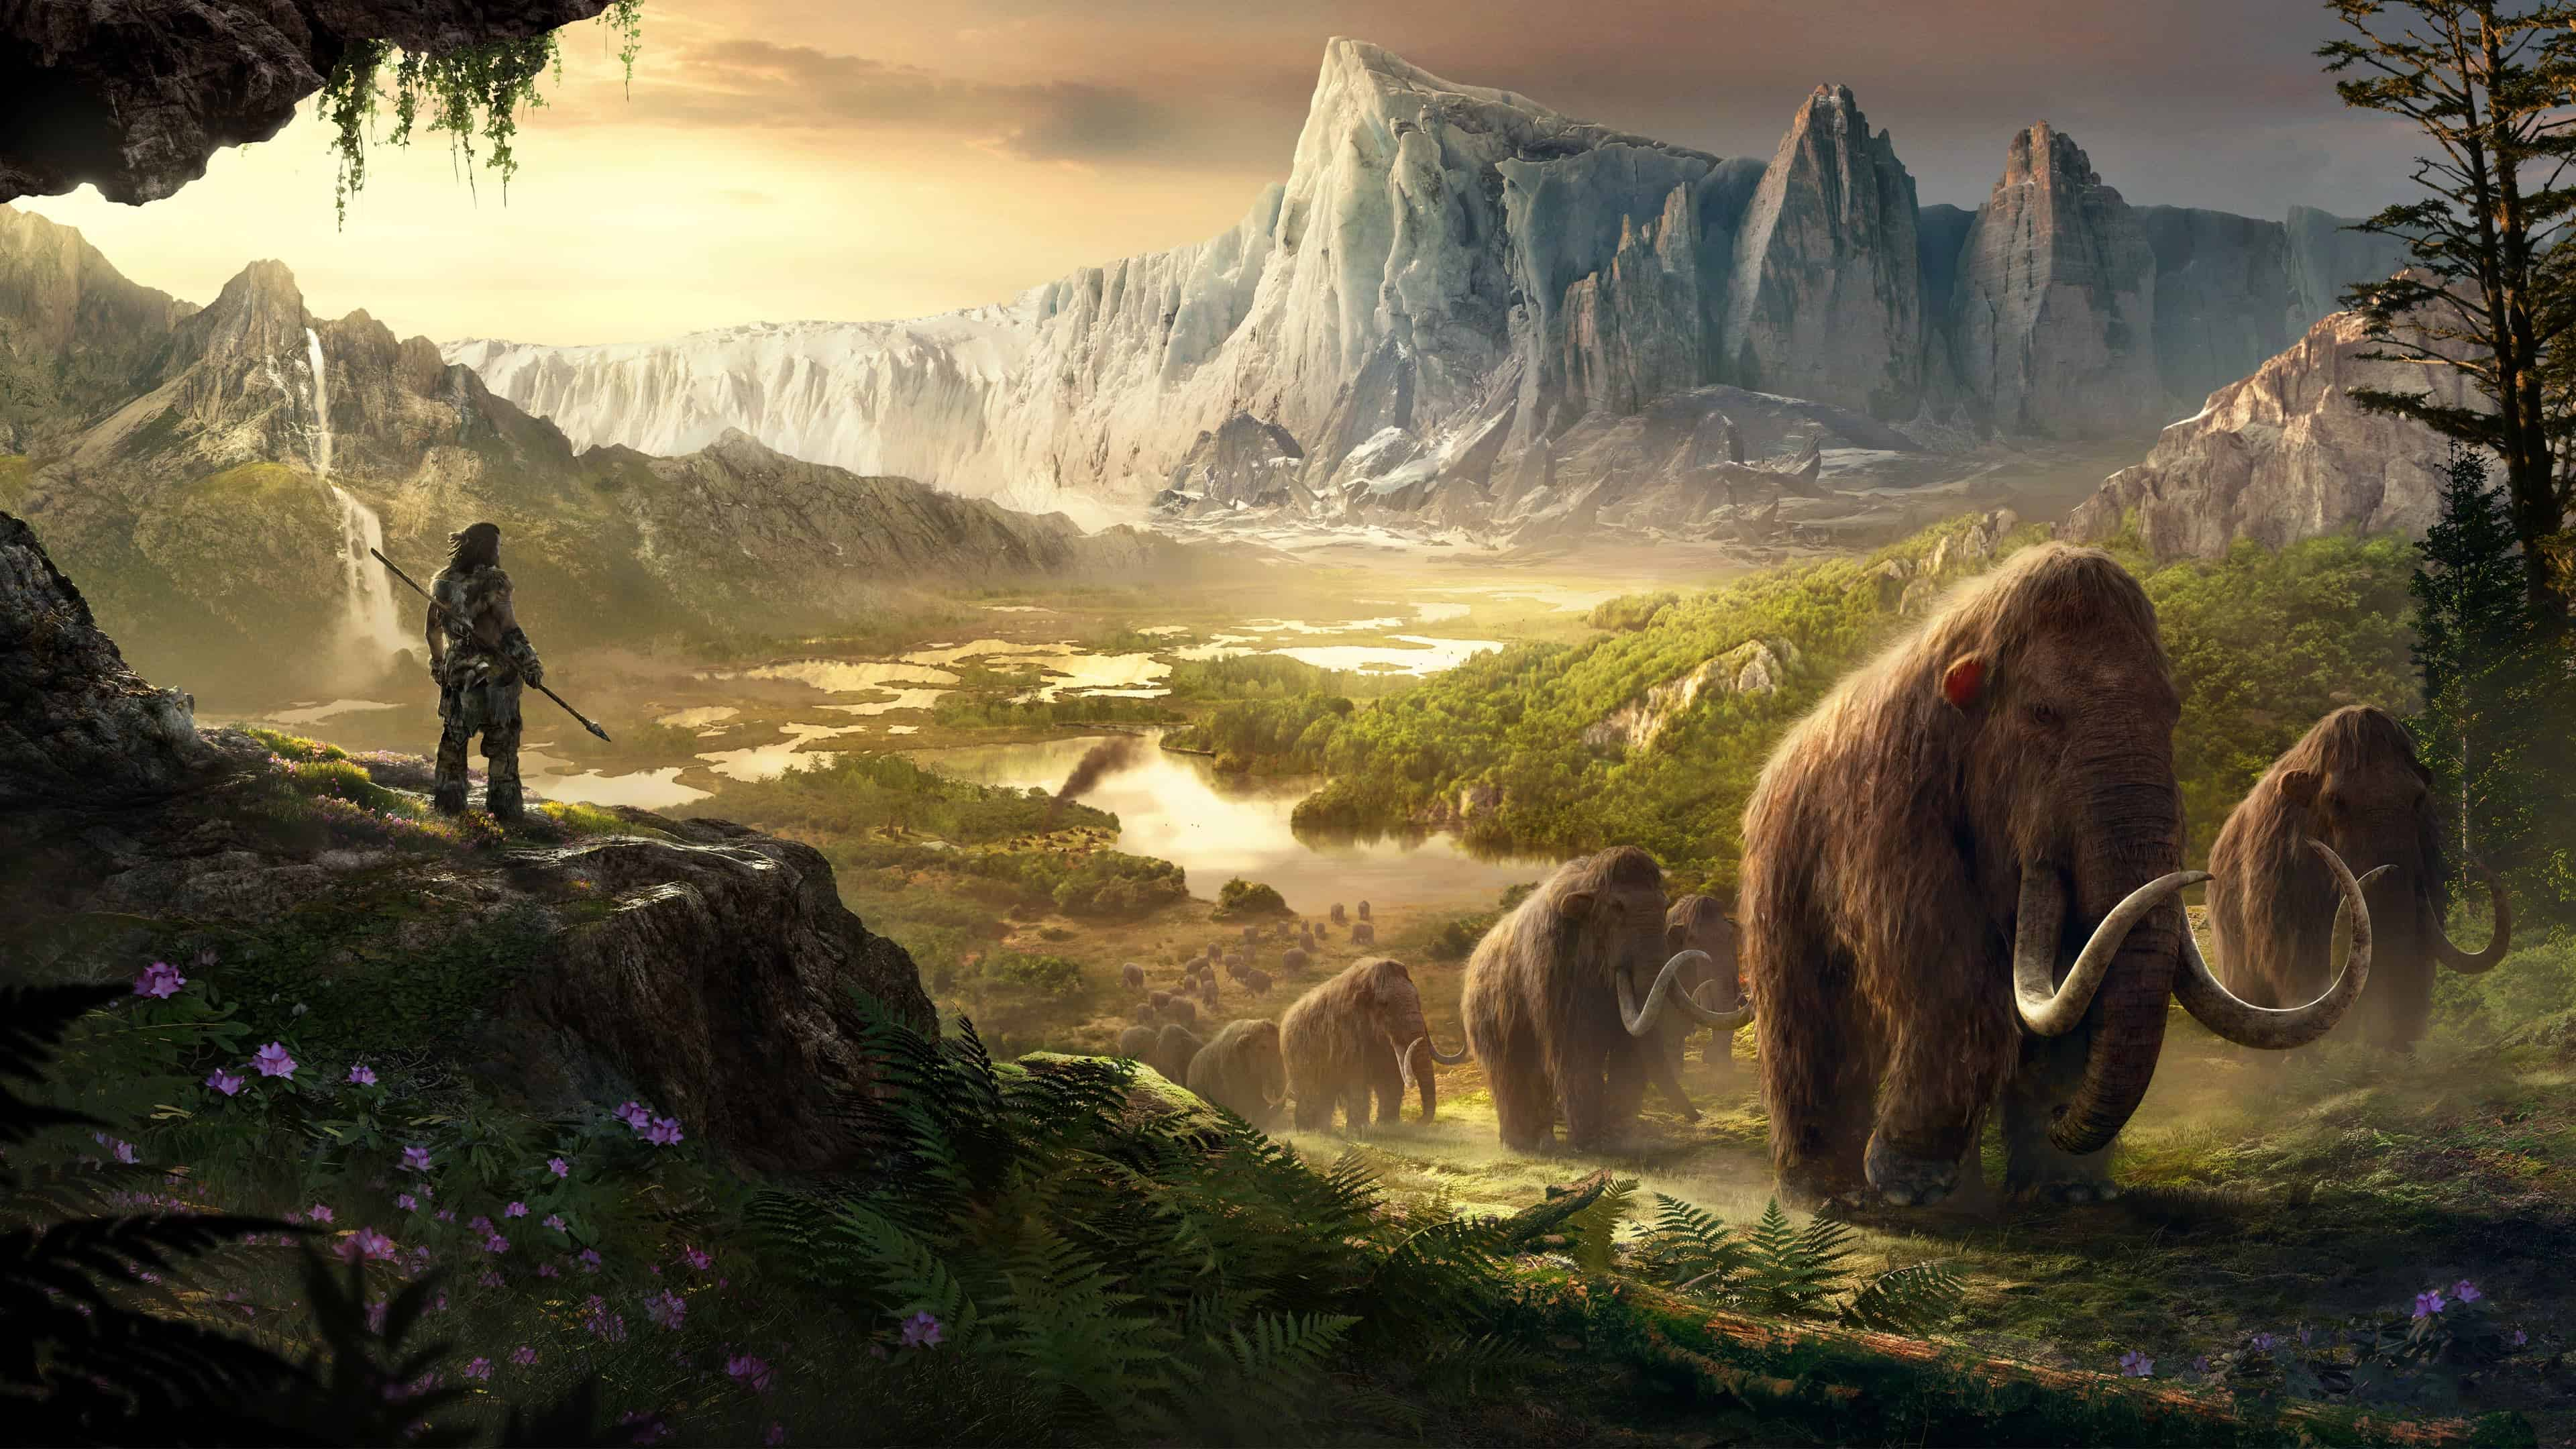 Far Cry Primal Mammoths UHD 4K Wallpaper   Pixelz far cry primal mammoths uhd 4k wallpaper